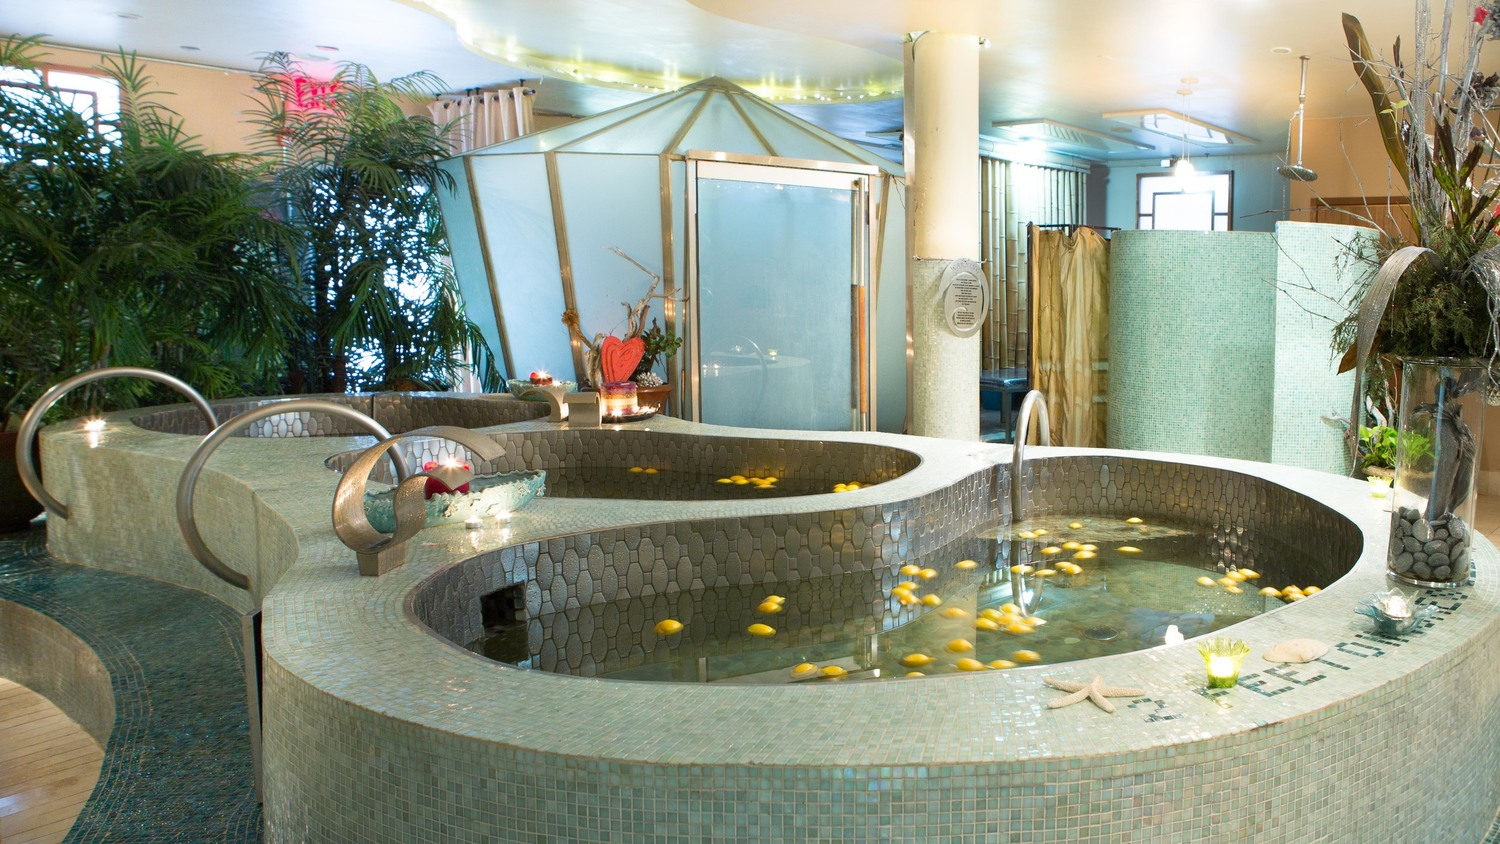 About us juvenex spa luxury 24 7 spa in new york city for 24 hour salon nyc